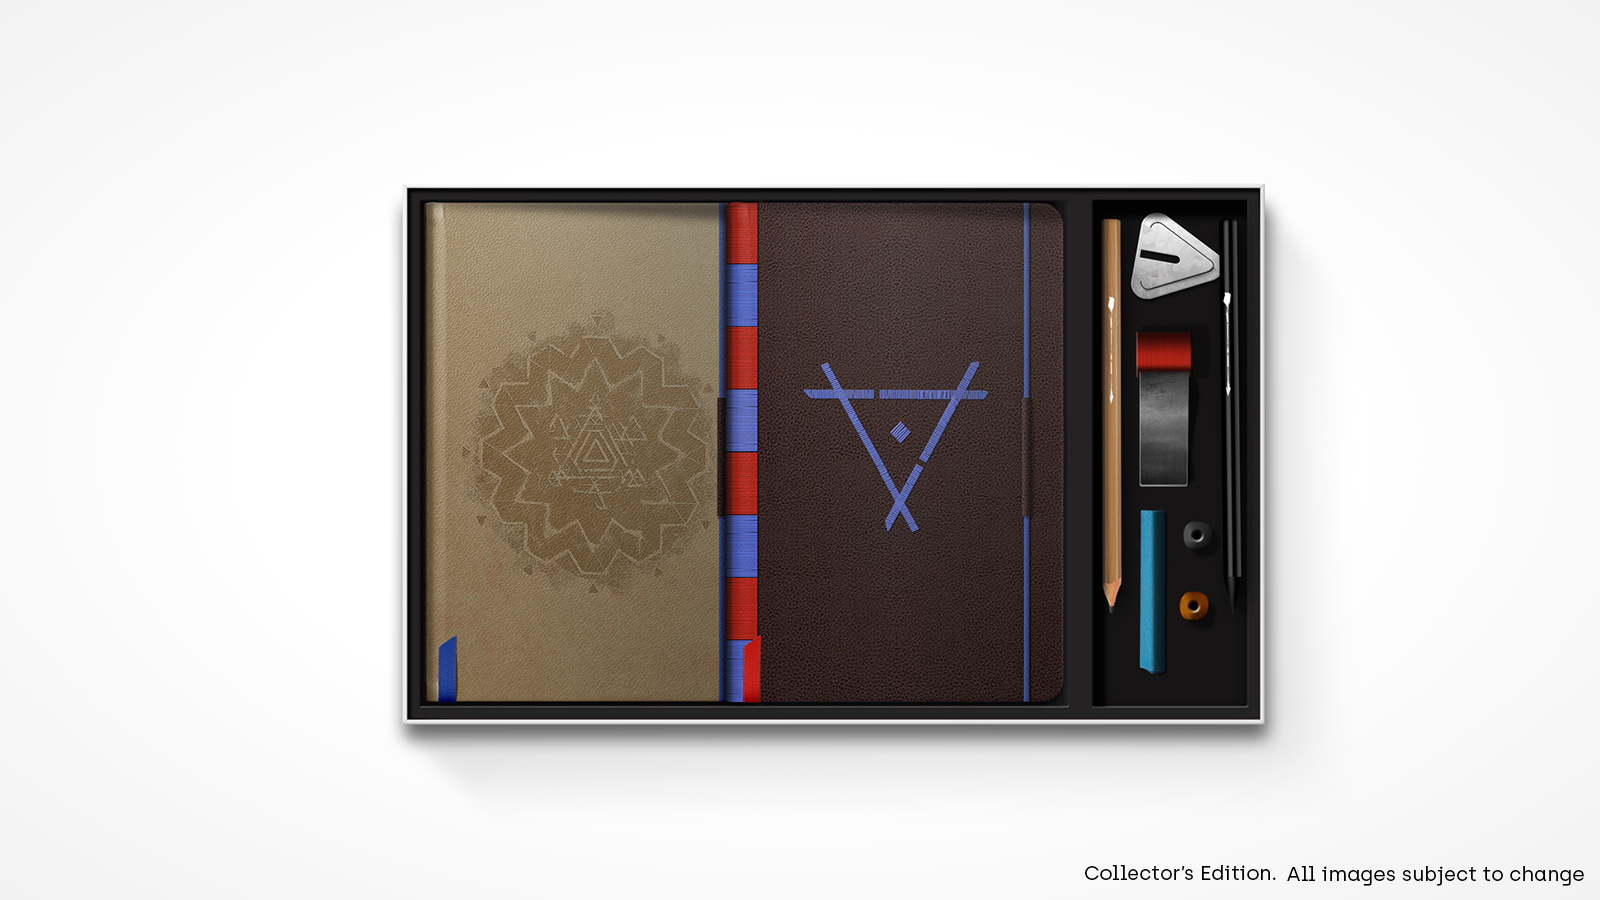 Horizon Zero Dawn And The Witcher 3 Get Officially Licensed Notebooks Sony Playstation 4 Collector Edition 1 Of 20